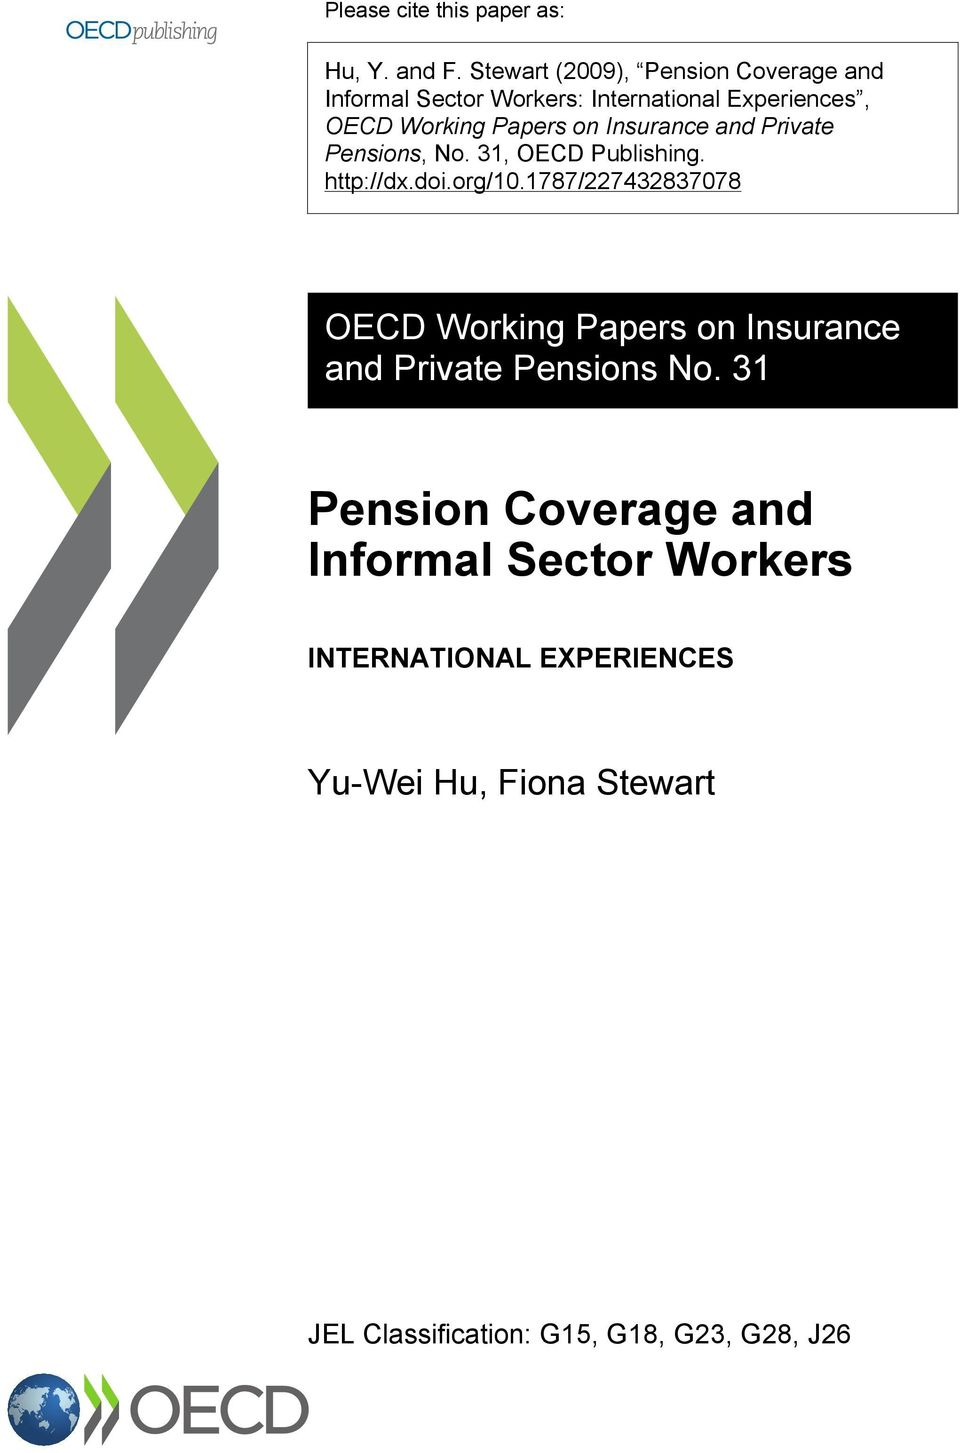 Insurance and Private Pensions, No. 31, OECD Publishing. http://dx.doi.org/10.